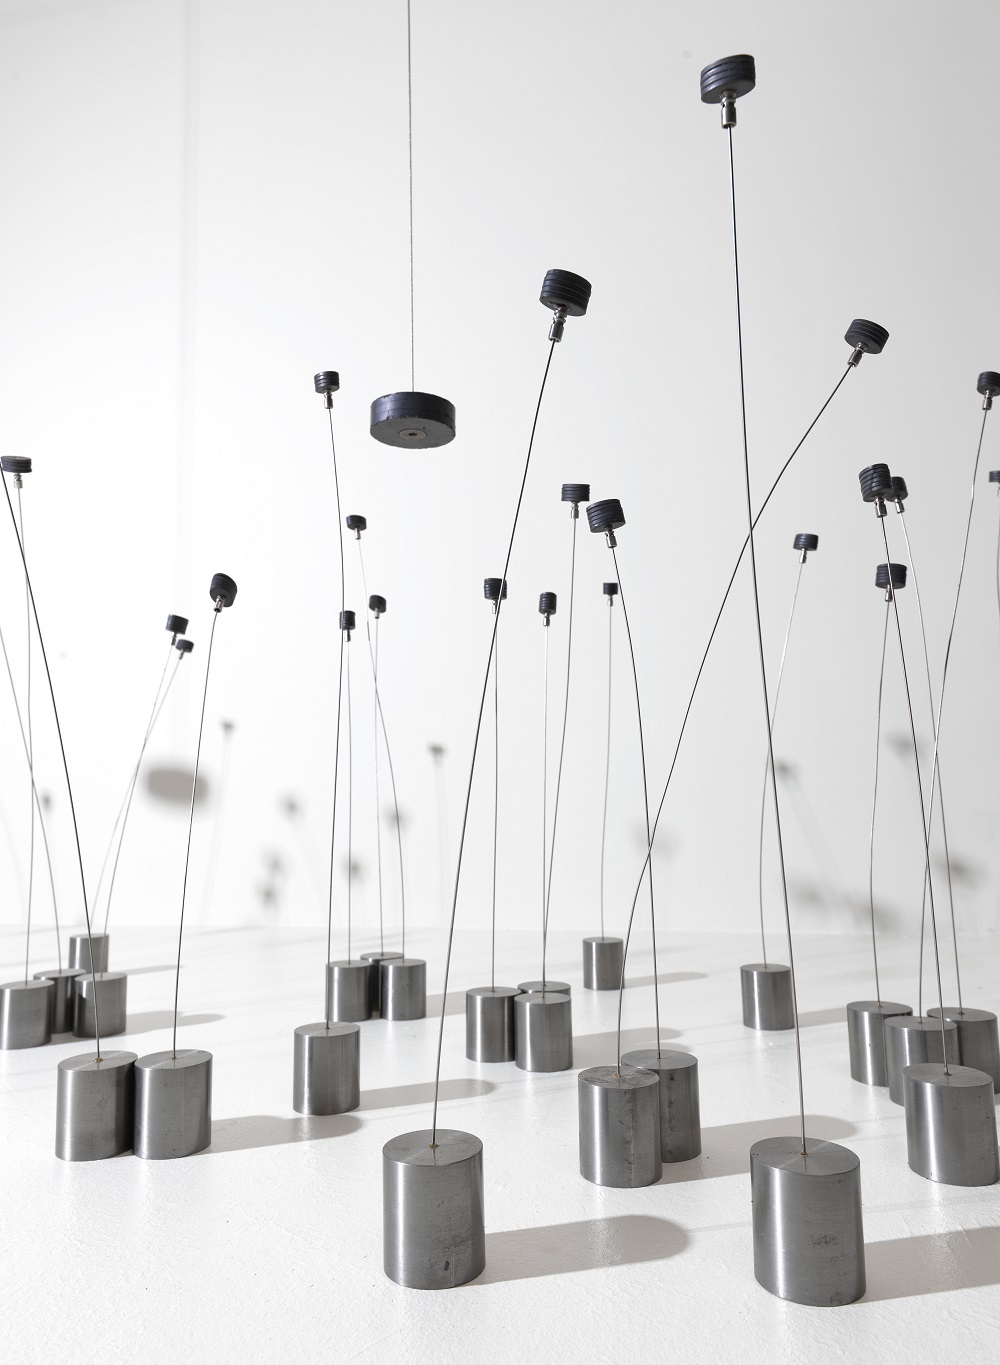 'Magnetic Fields'(detail), 1969, Metal, magnets, wire, 63.5 × 426.7 × 91.4cm, Solomon R. Guggenheim Museum, New York.Partial gift, Robert Spitzer, by exchange, 1970© ADAGP, Paris and DACS, London 2019 Photo: Solomon R. Guggenheim Museum, New York